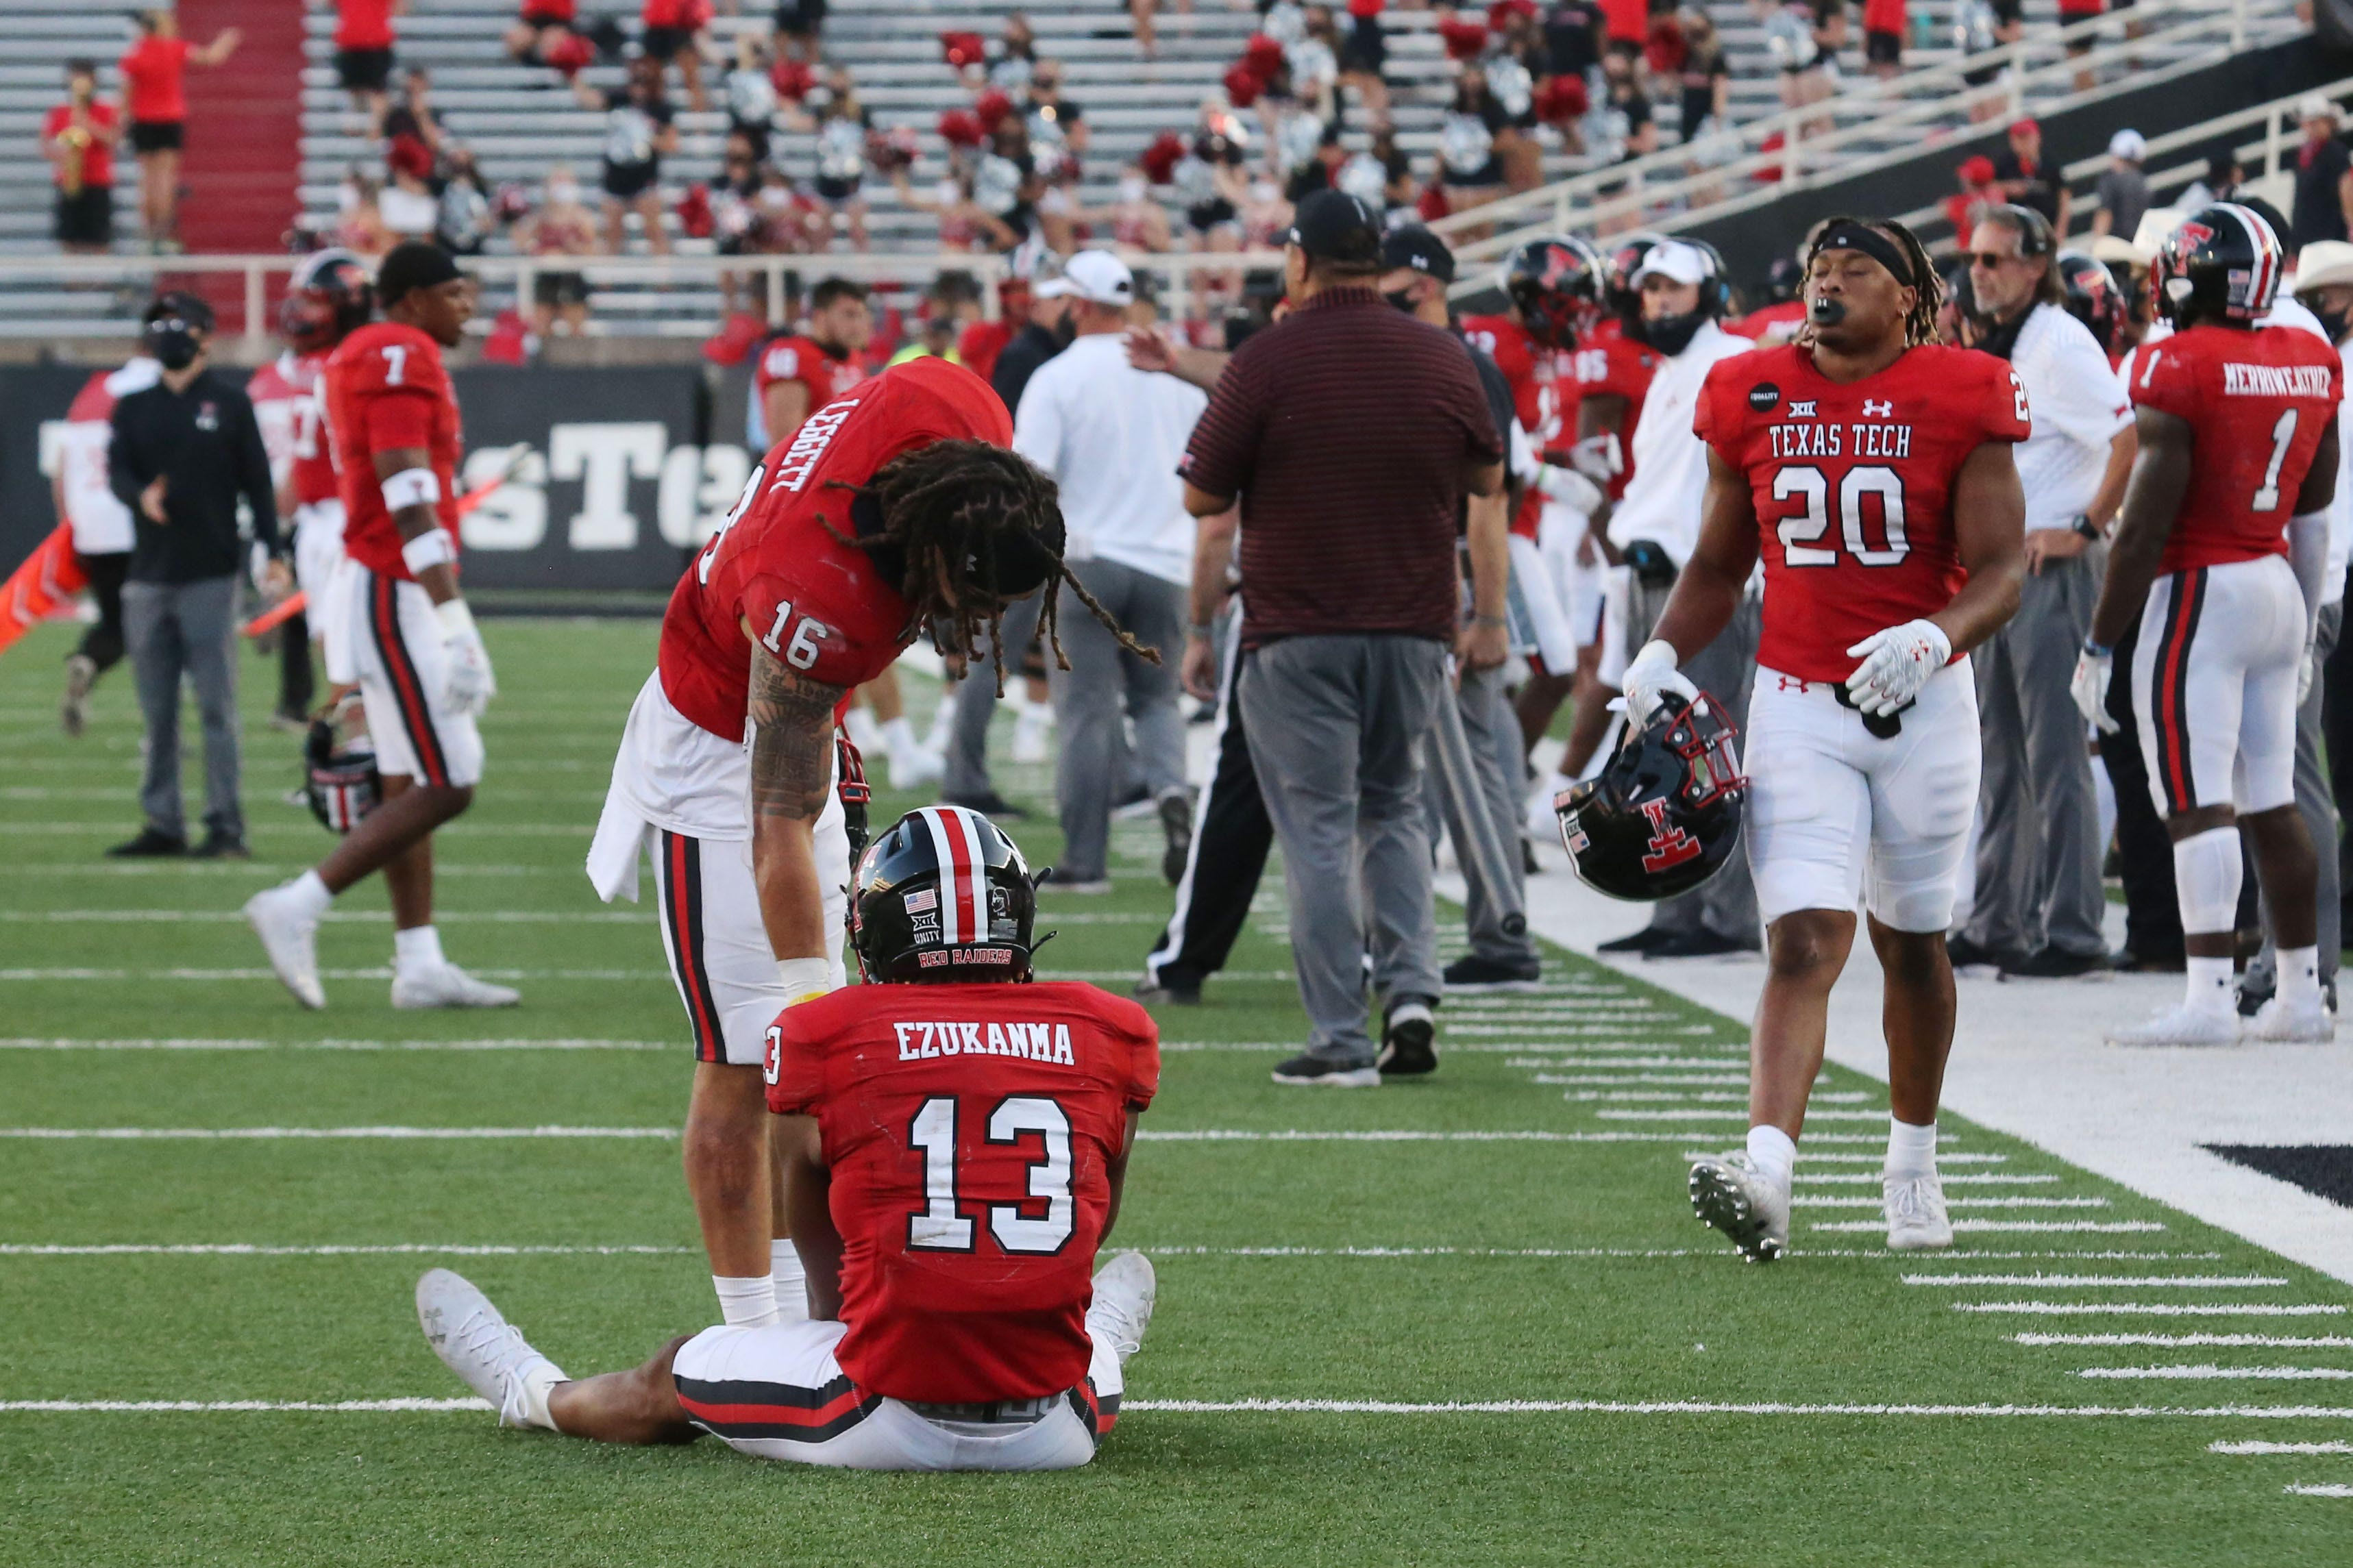 Opinion: Texas Tech's late-game implosion gives it easy case for top spot in Misery Index